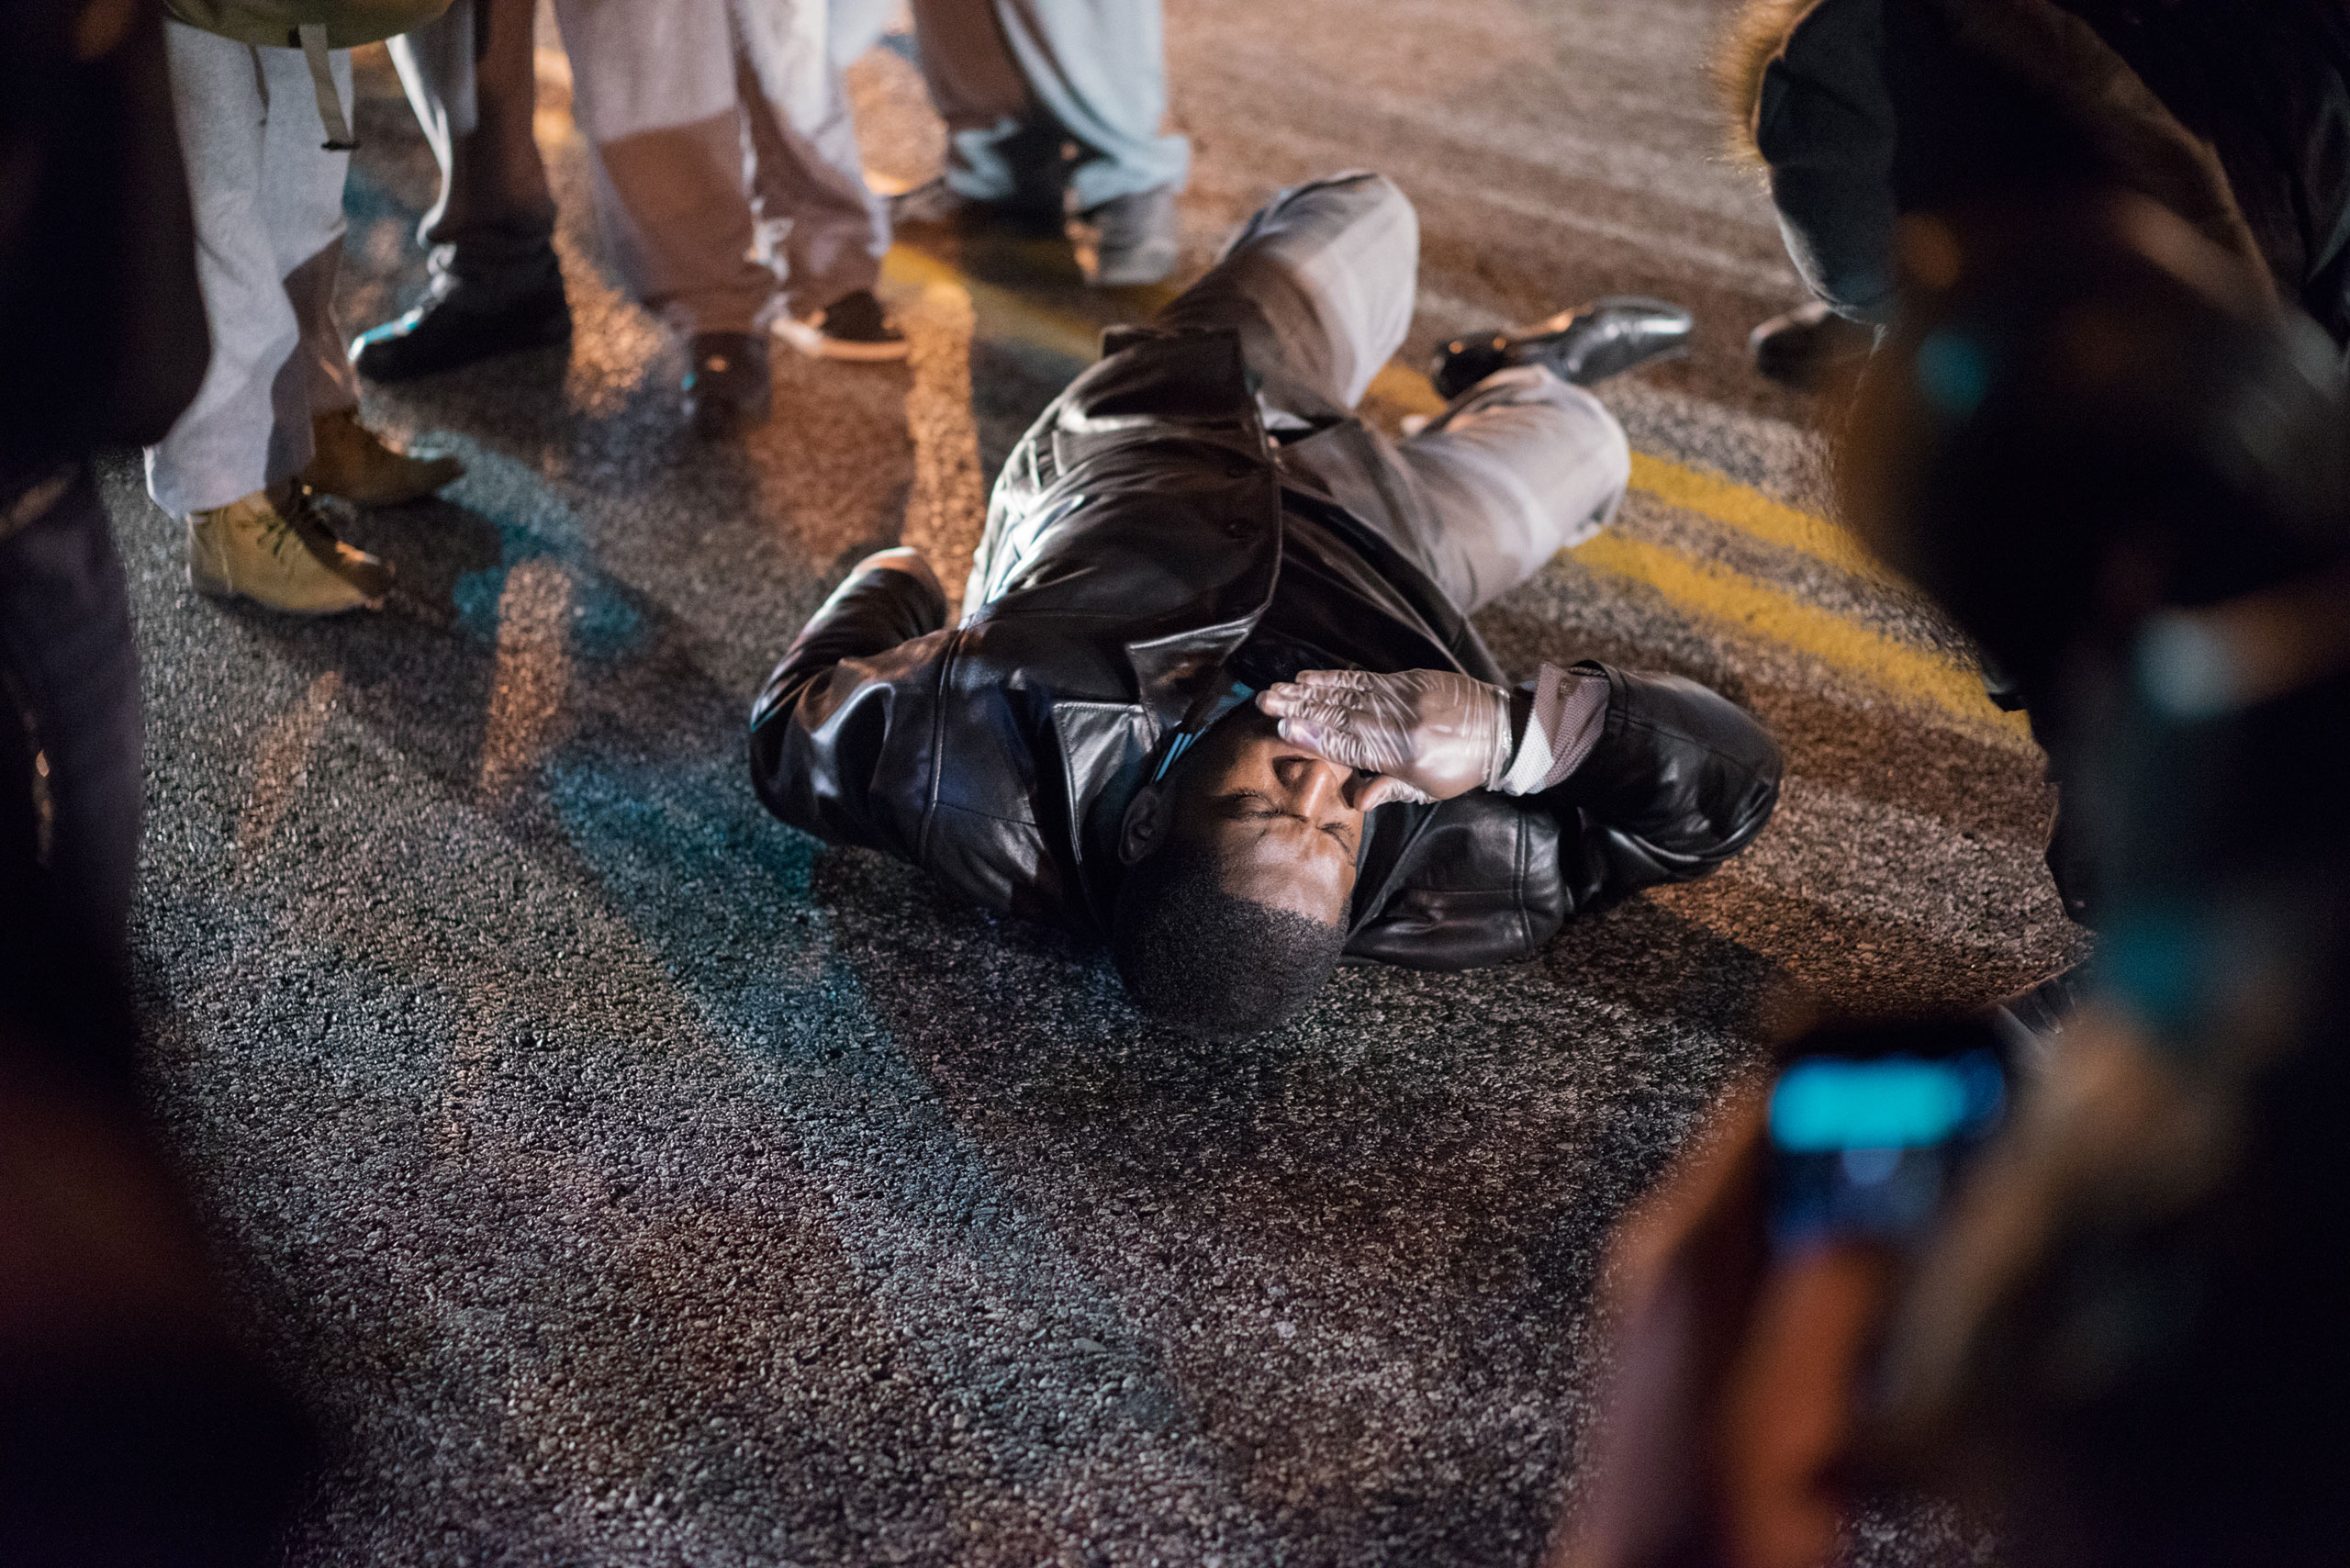 A man lies on the ground amid protests in Ferguson, Mo. on Nov. 24, 2014